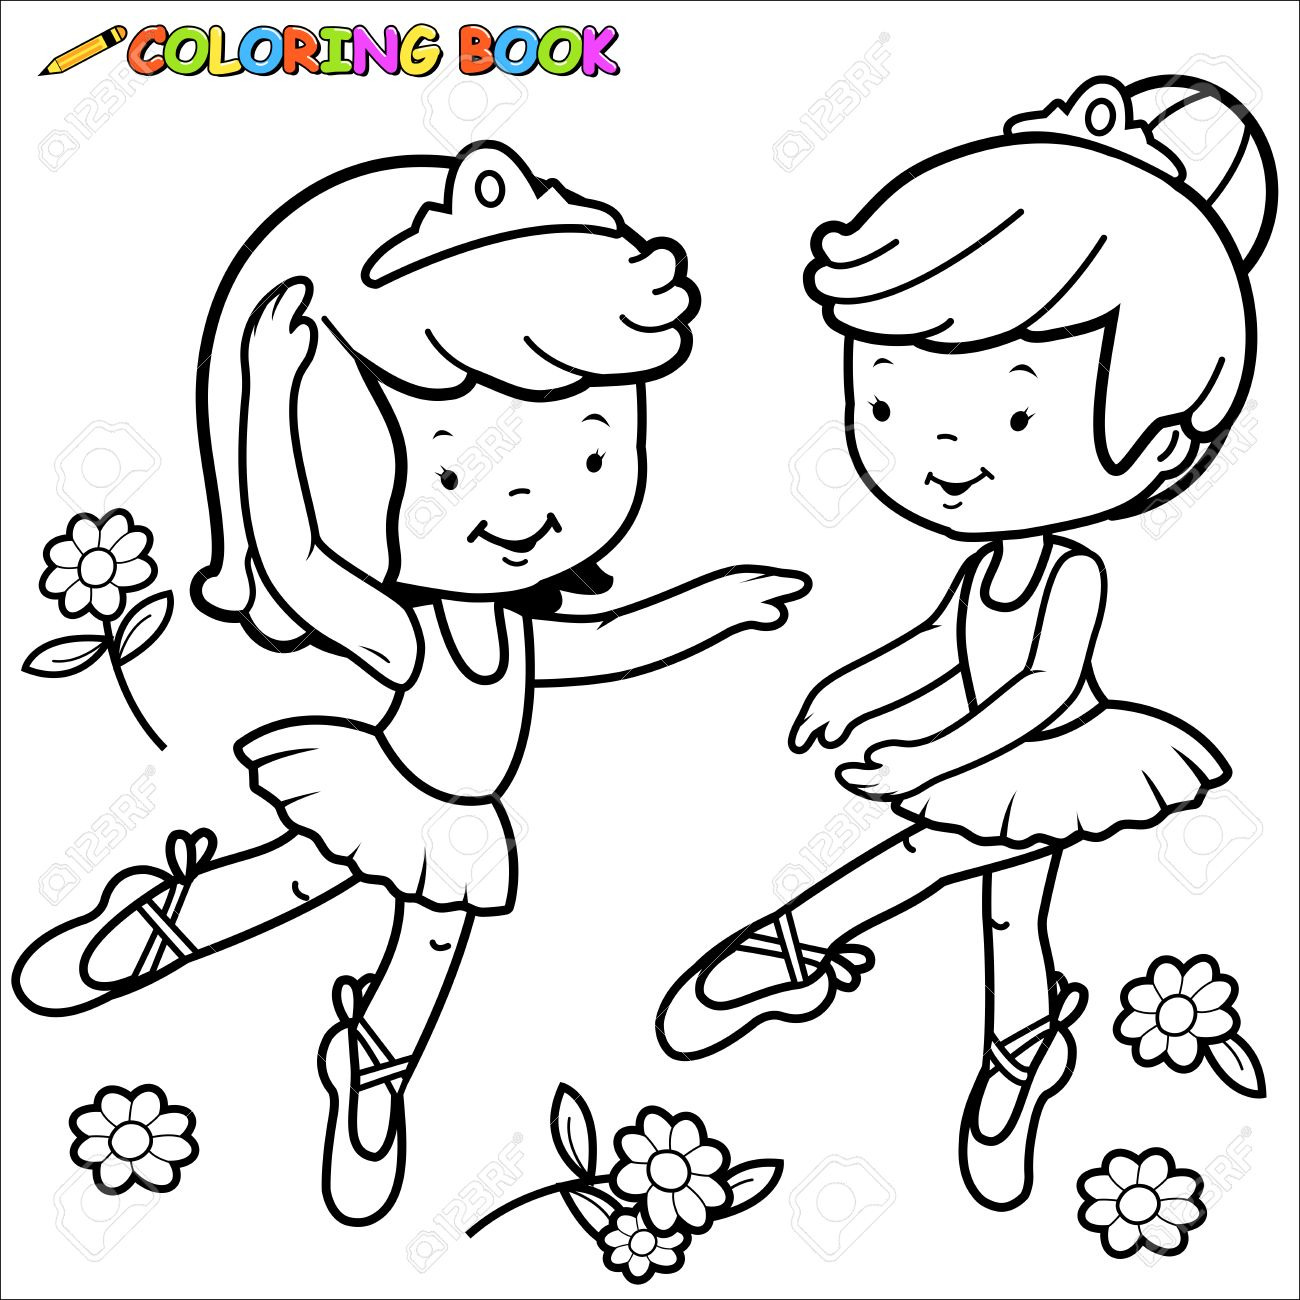 Coloring book page ballerina girls dancing